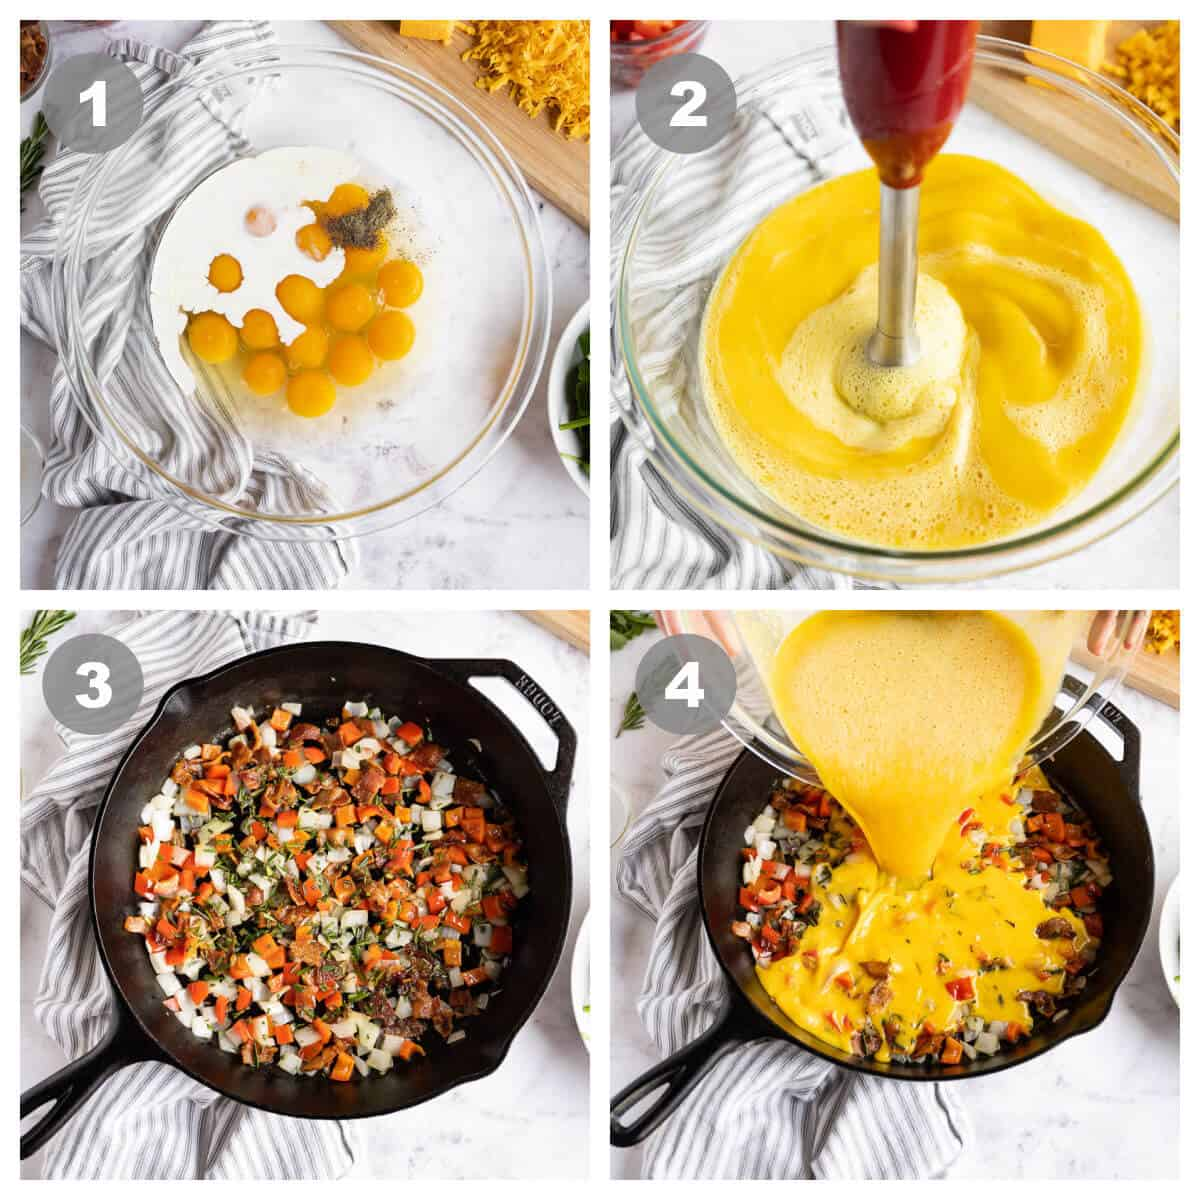 collage of 4 photos showing the first 4 steps to making a frittata